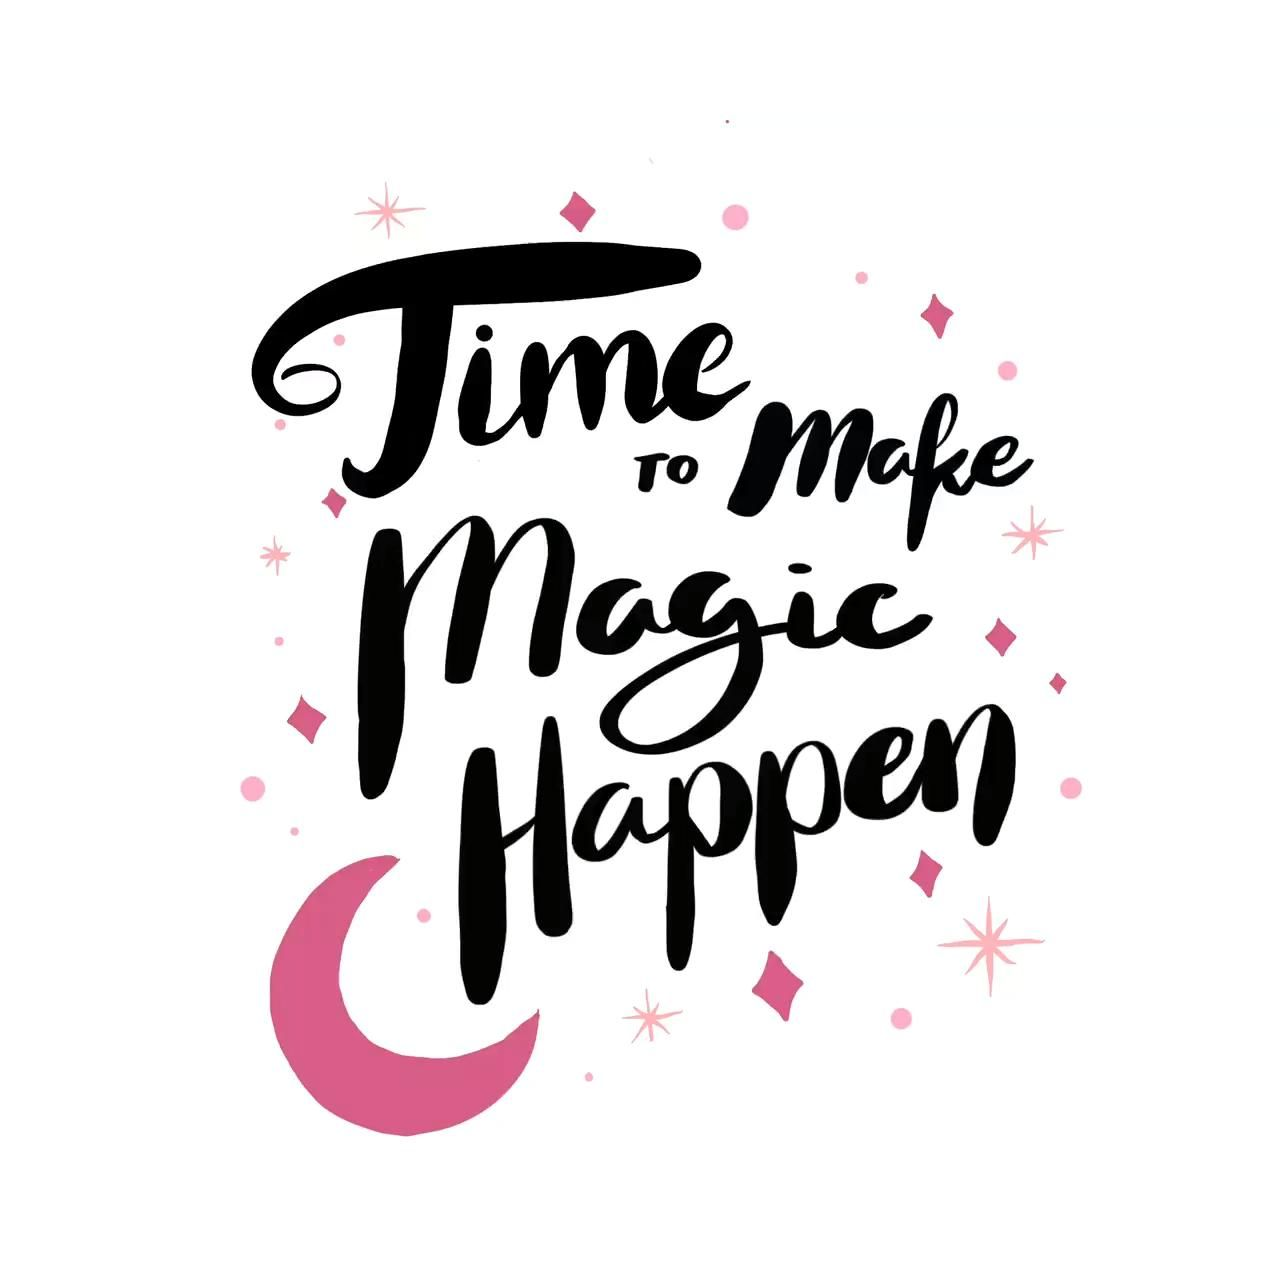 Cute Inspiring T-shirts, Time to make Magic Happen Quote T-shirts  Woman's shirt with positive says.